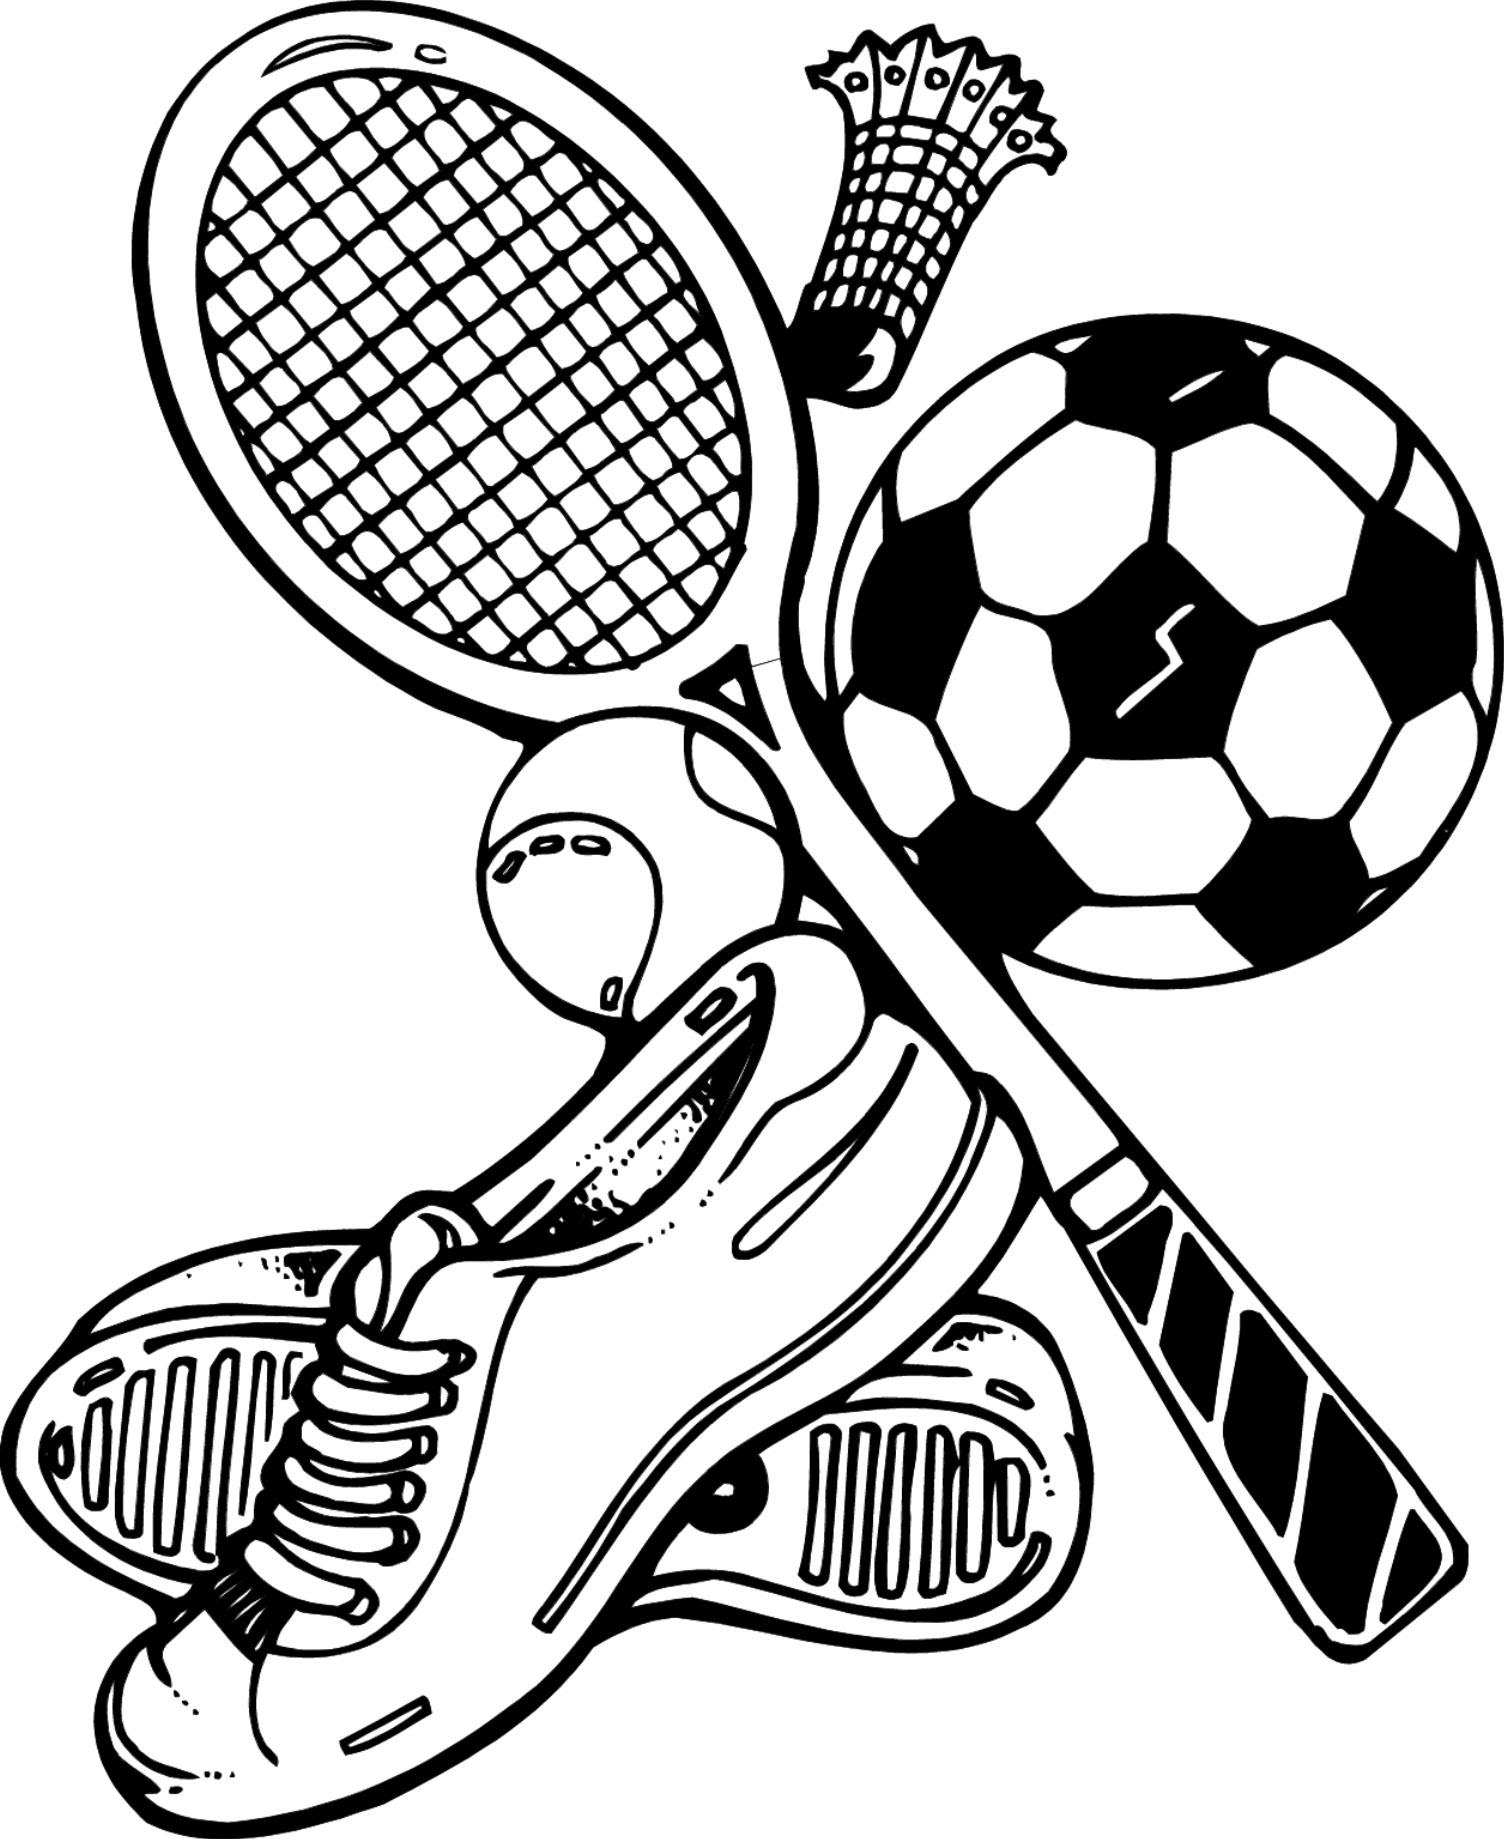 sports equipment coloring pages | projectyear2savant